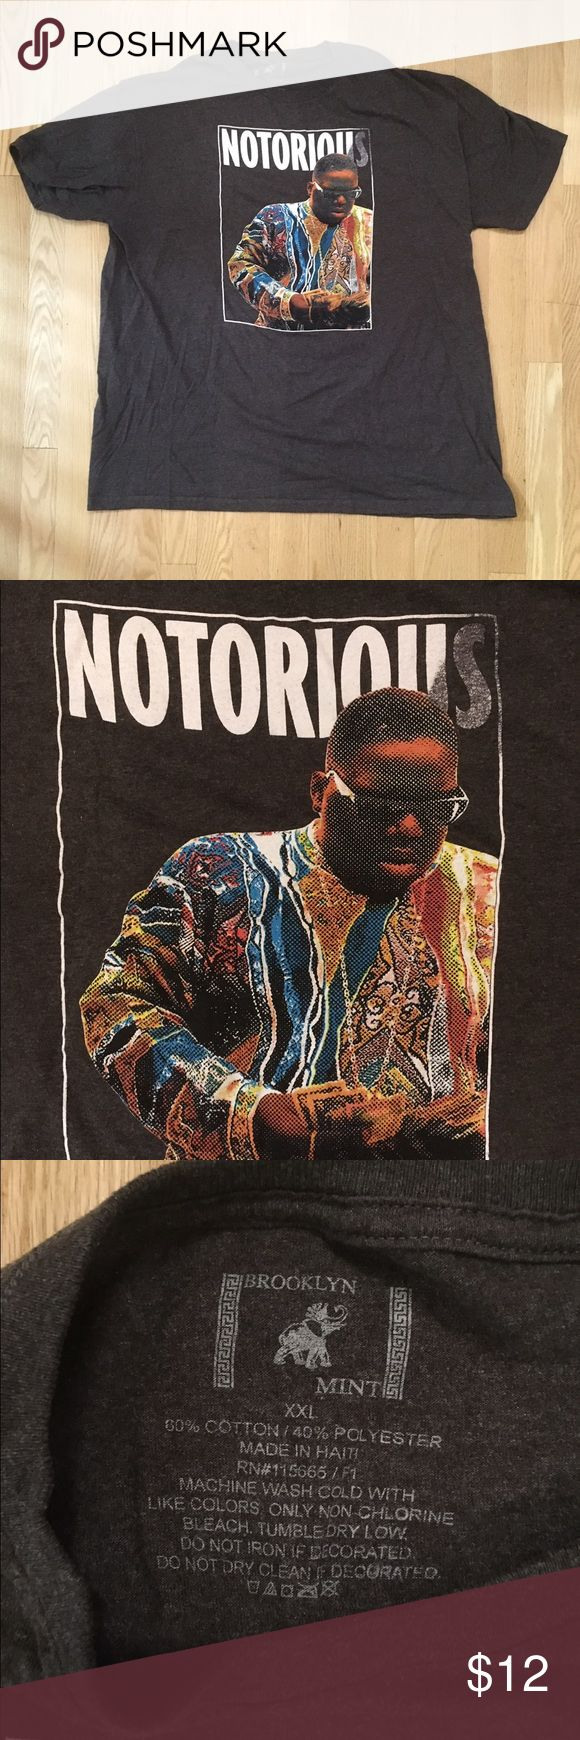 Notorious BIG Grey T Shirt XXL Biggie Smalls USED Notorius BIG Grey T-Shirt. Size men's XL. Please inspect photos for condition. 60% Cotton 40% Polyester. Fast shipper! brooklyn mint Shirts Tees - Short Sleeve